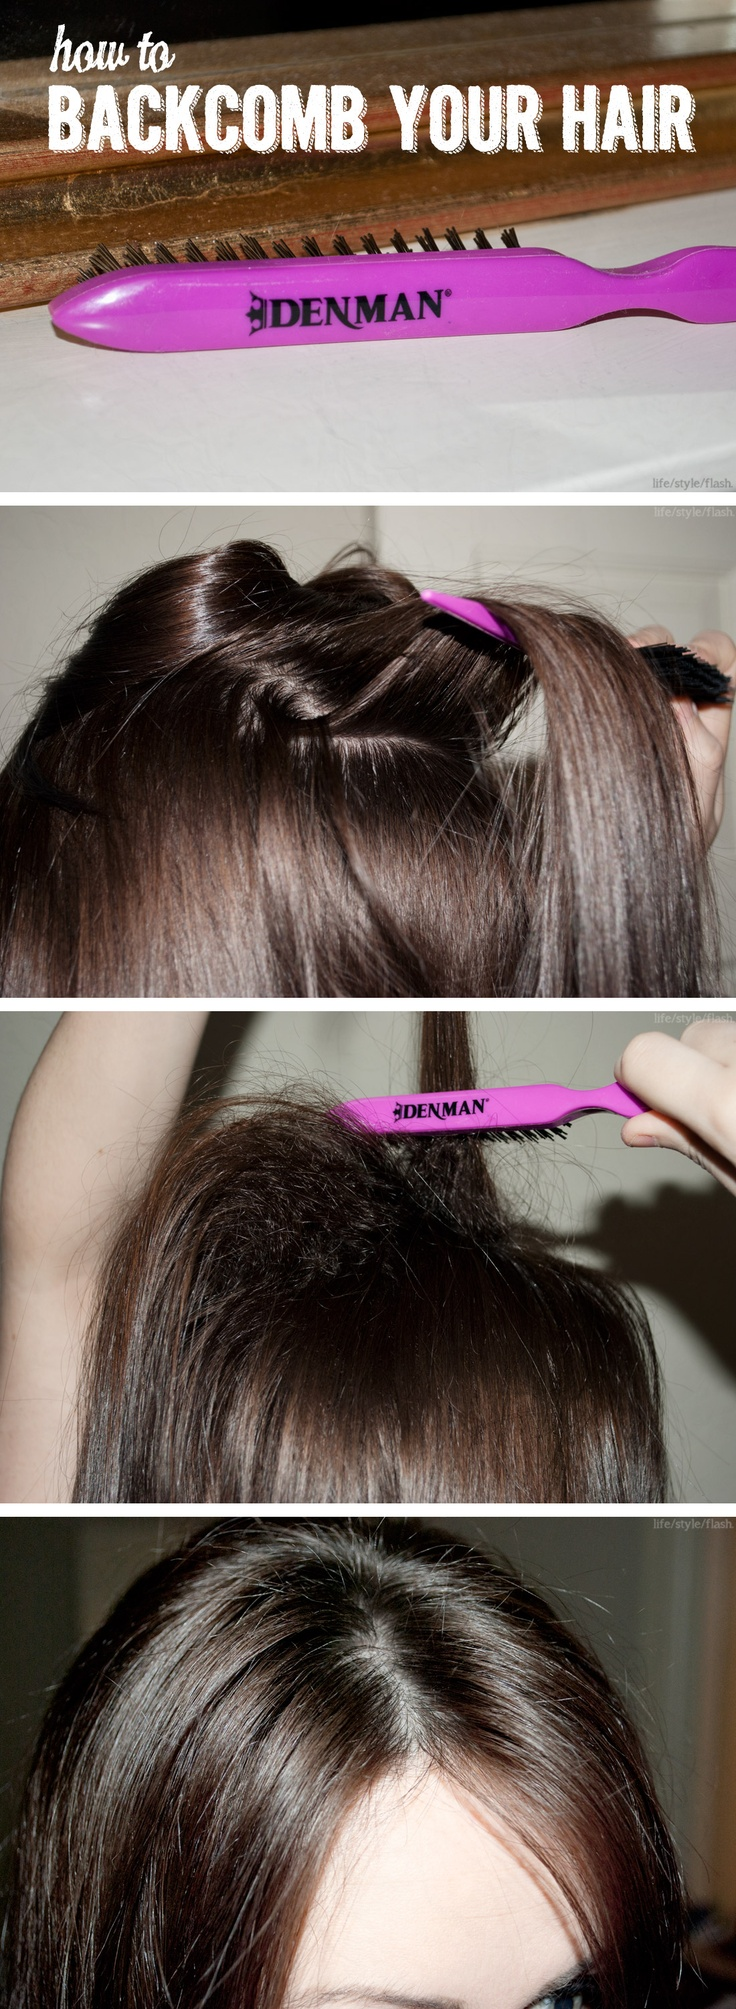 How to backcomb your hair.